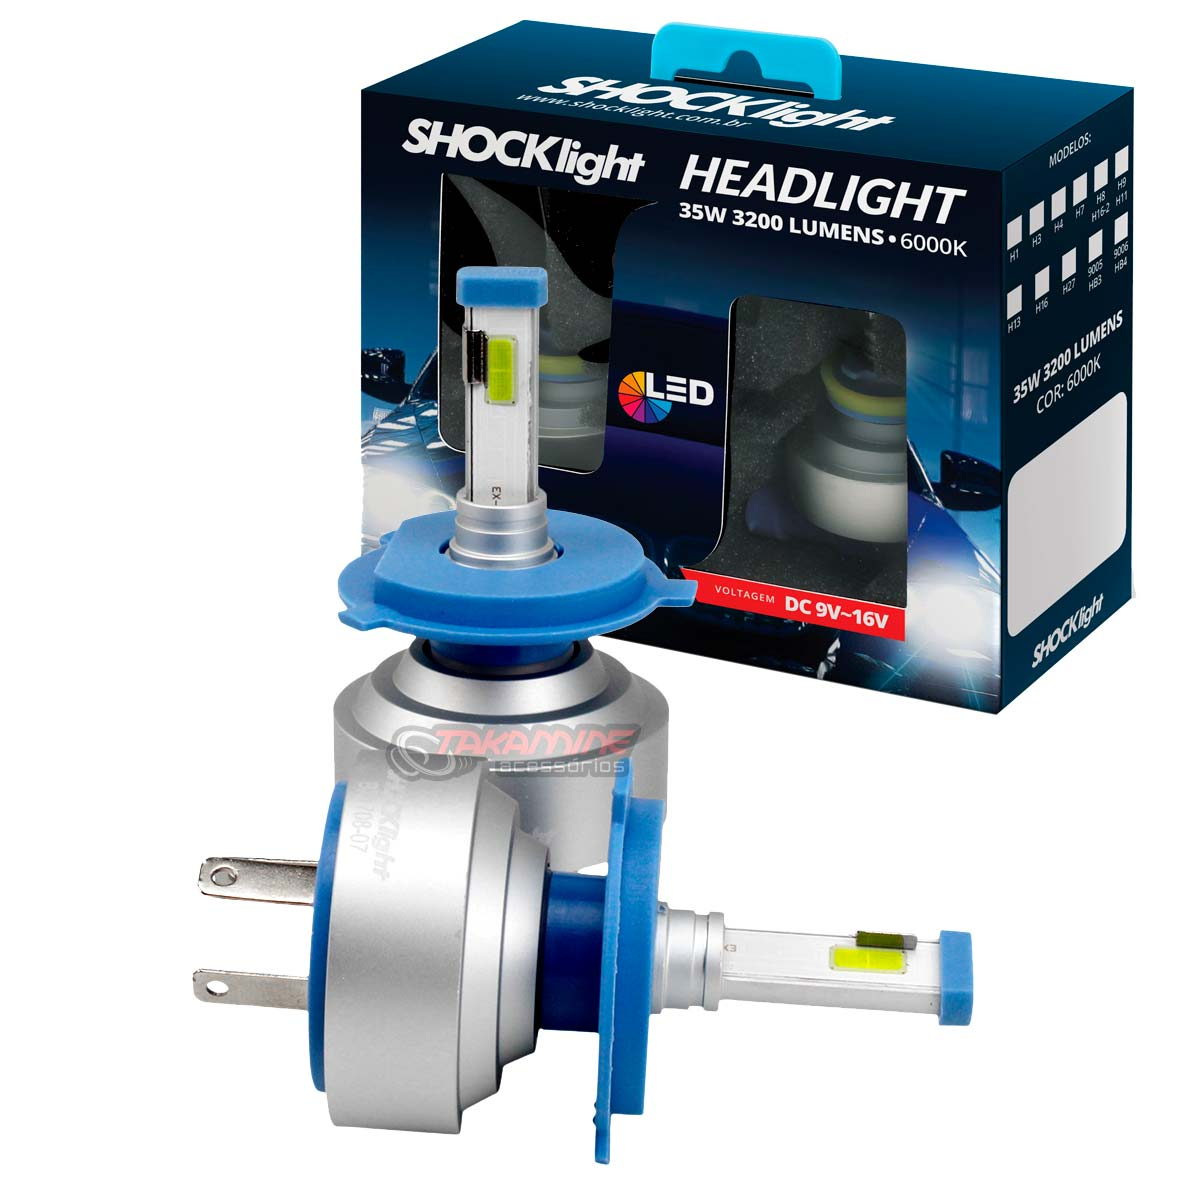 Kit LED Strada 1996 1997 1998 1999 2000 2001 tipo xenon modelo H4 35W  encaixe original plug & play New Headlight